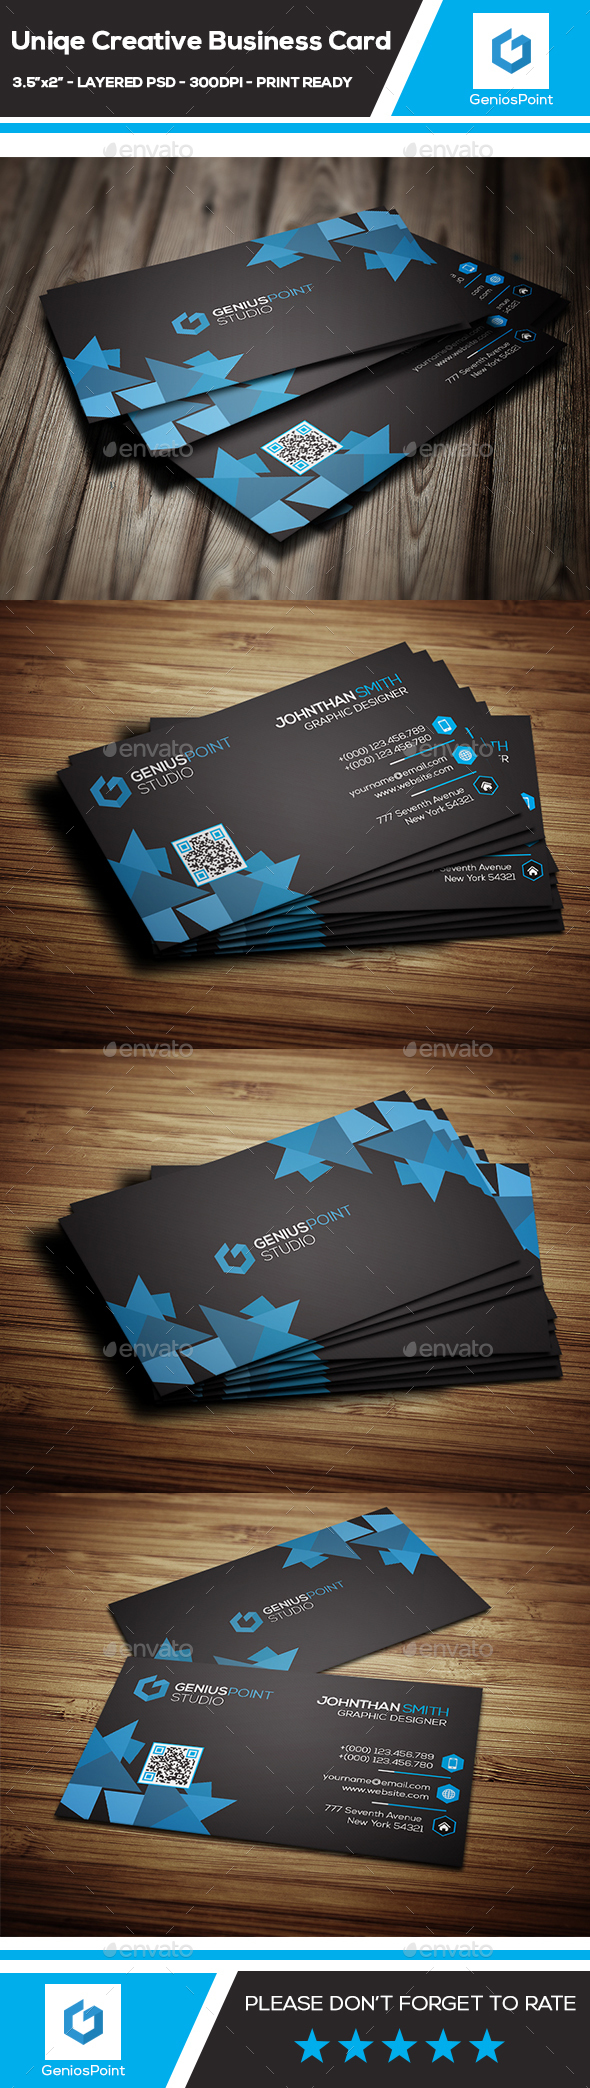 Unique Creative Business Card - Business Cards Print Templates